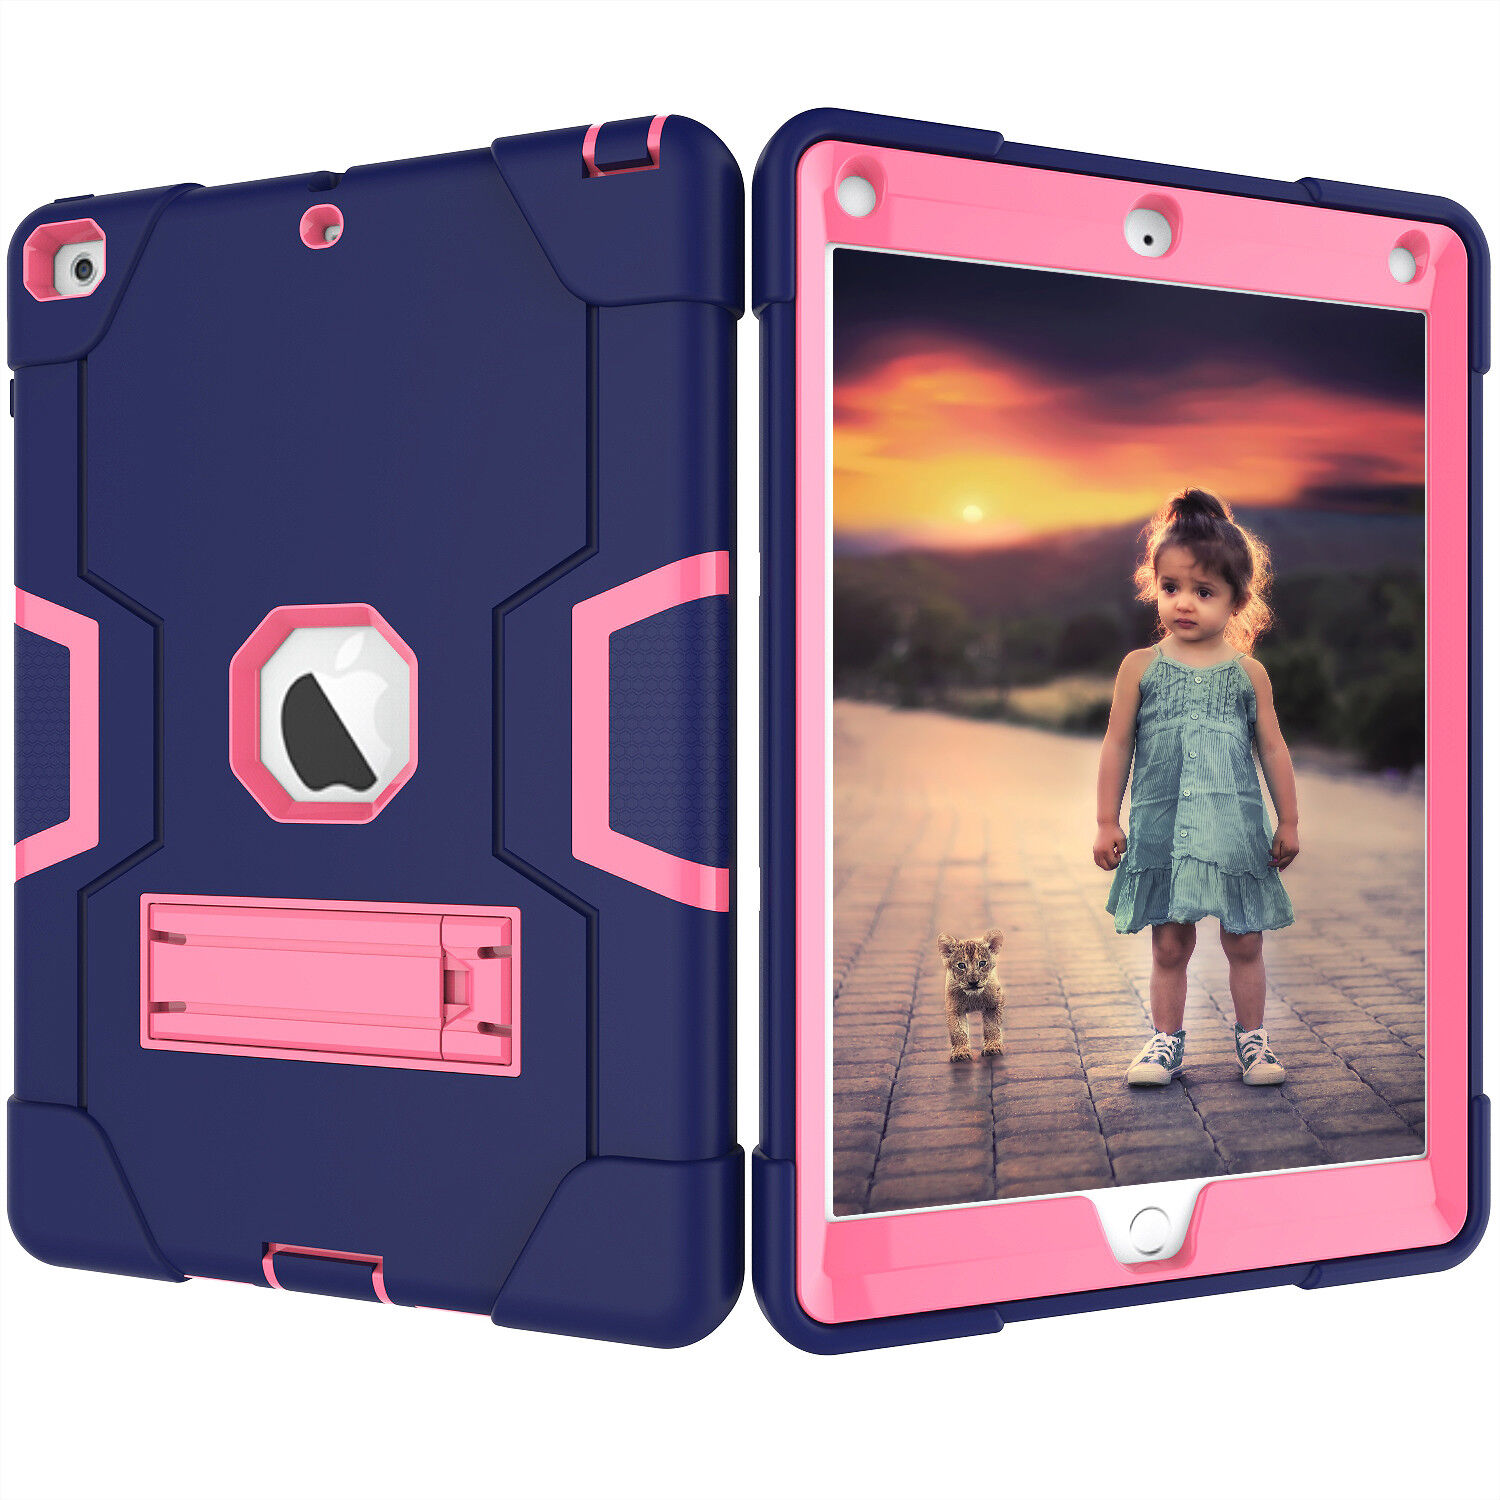 Shockproof Rubber Hard Kickstand Case Cover For Apple iPad 9.7 Inch 2018 6th Gen